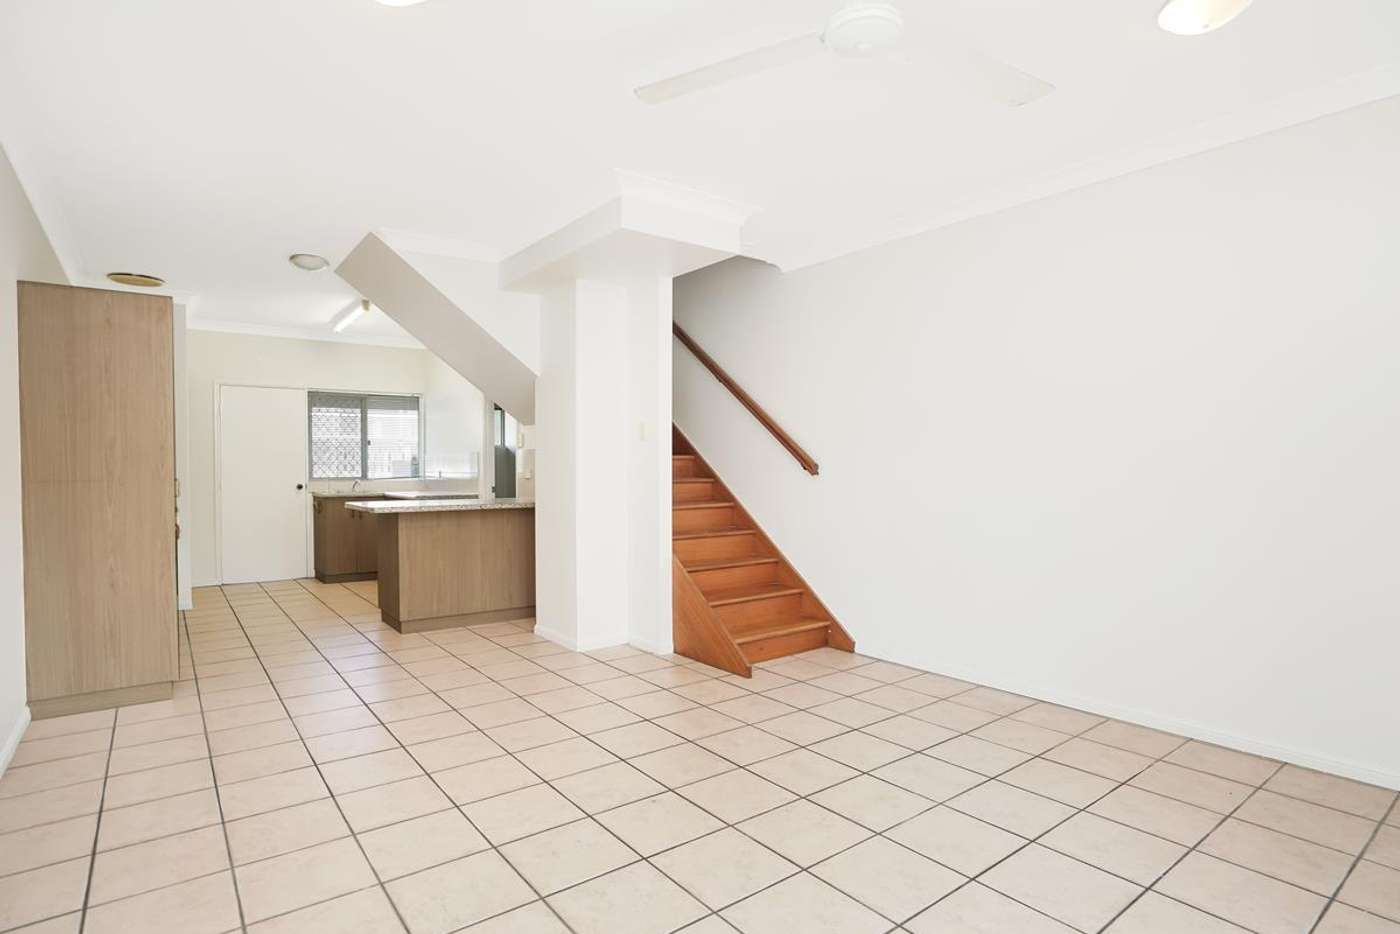 Main view of Homely townhouse listing, 5/1 Sondrio Street, Woree QLD 4868